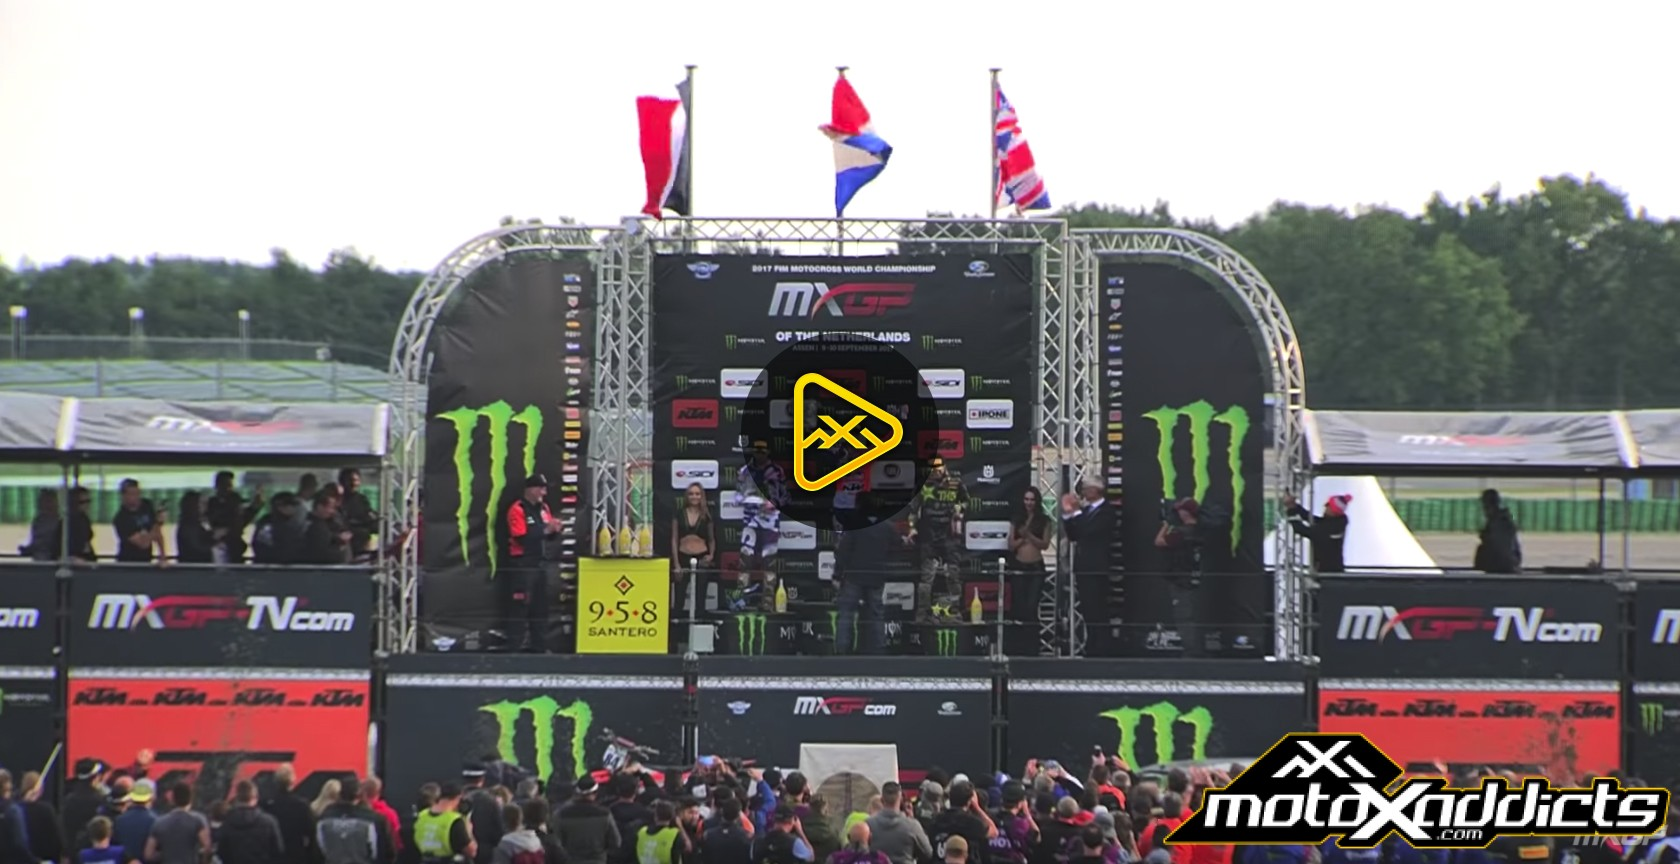 2017 MXGP of The Netherlands Highlights